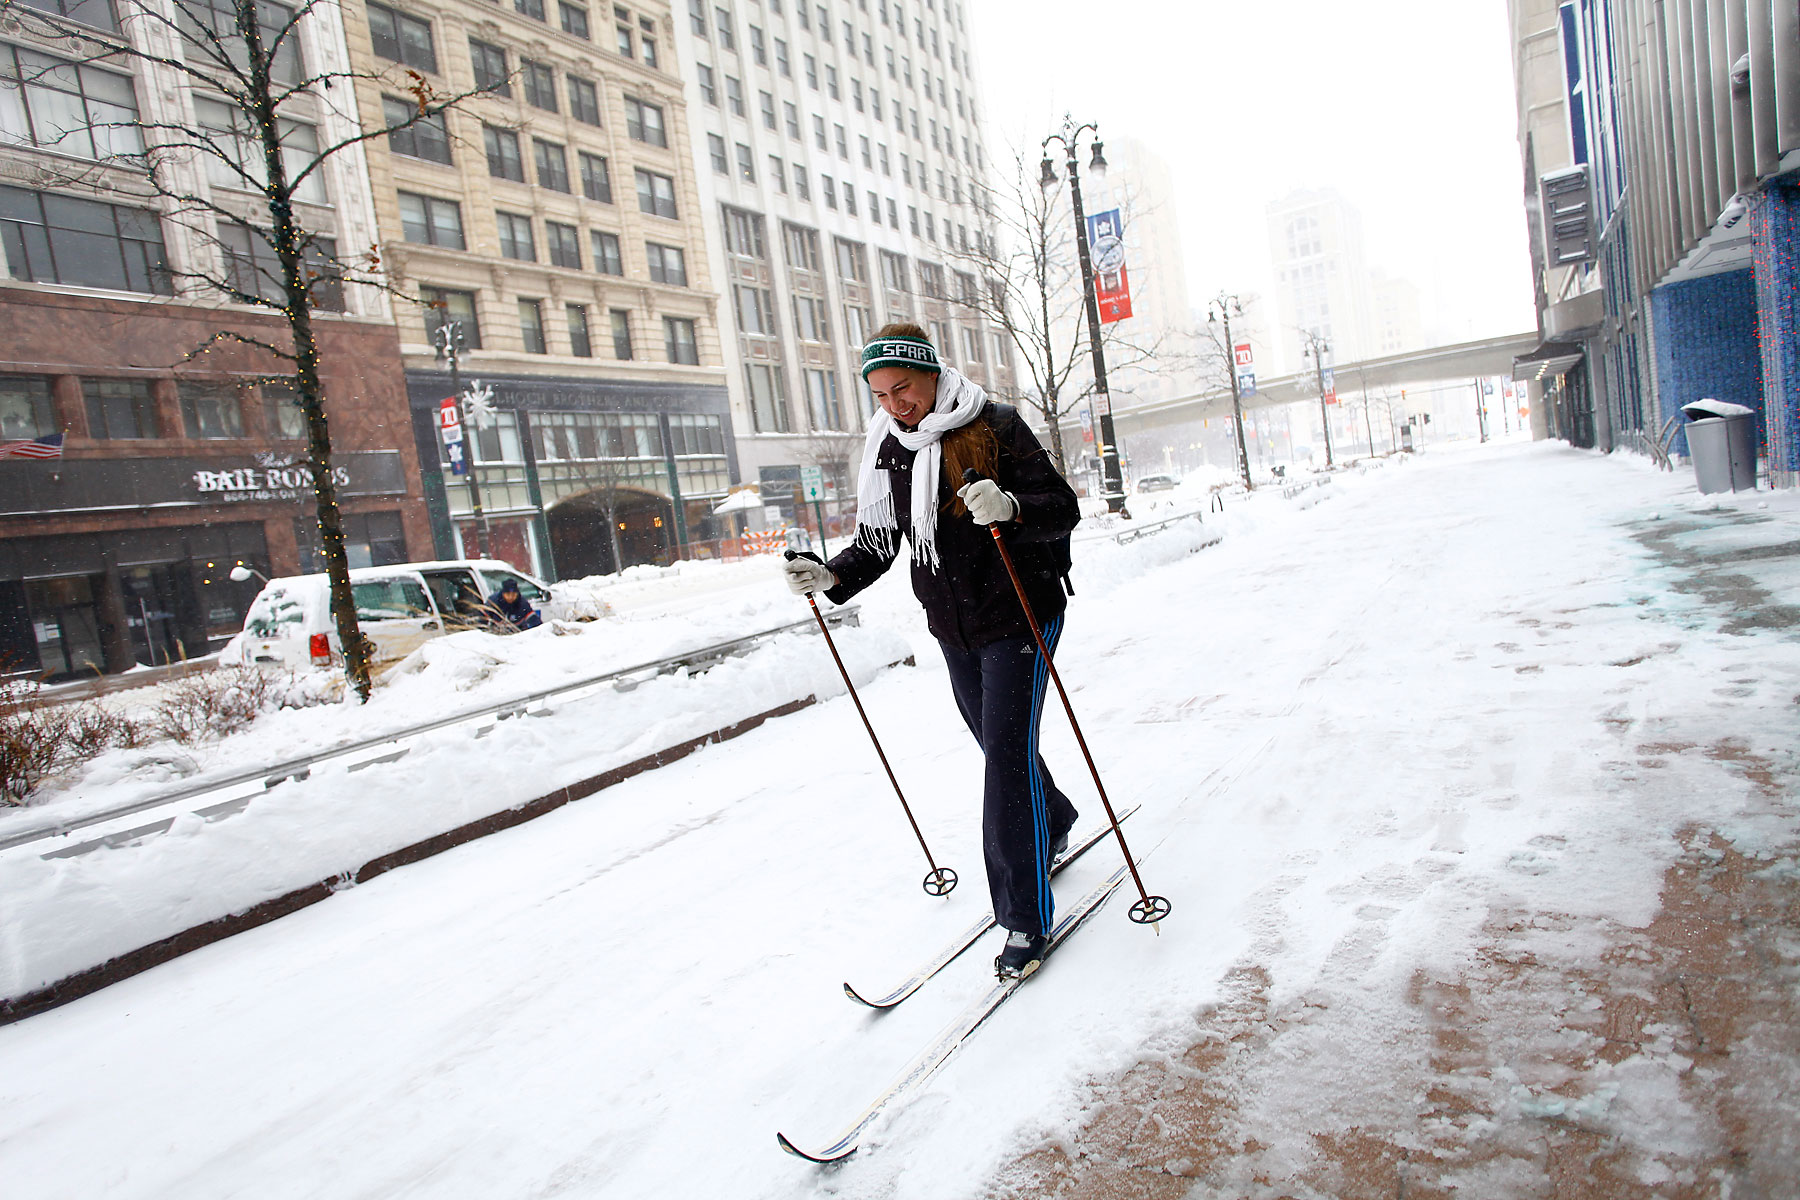 Alison Mueller skies to work through several inches of snow along Woodward Avenue as the area deals with record breaking freezing weather January 6, 2014 in Detroit, Michigan.